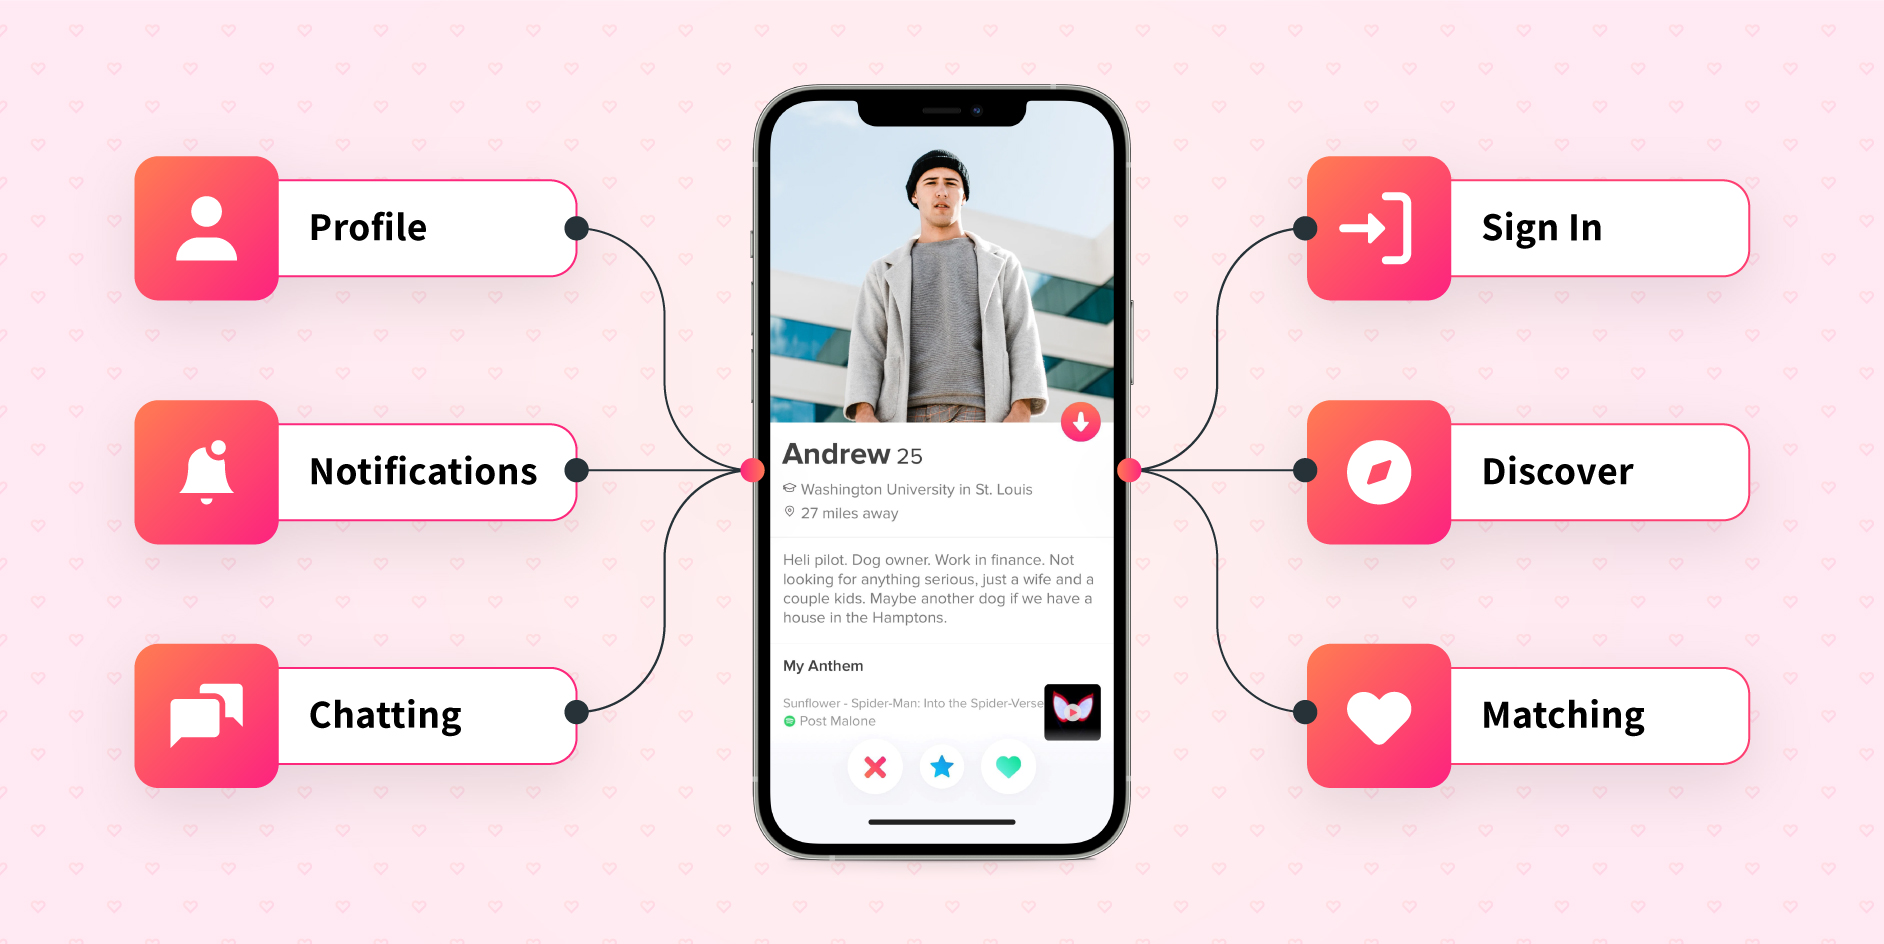 Build Online Dating App Like Tinder: Features, Cost & Tech Stack